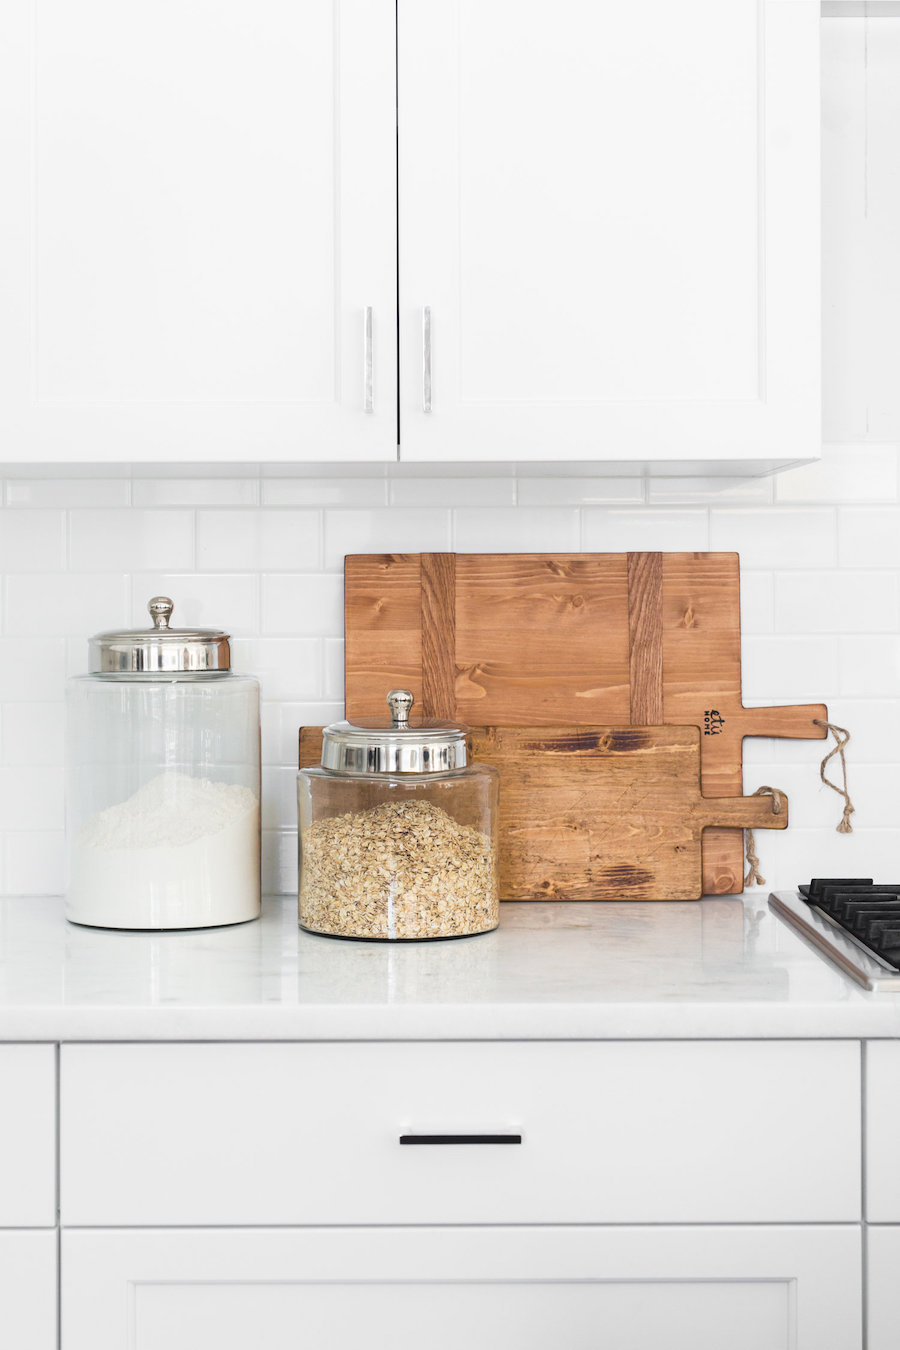 Wood Cutting Board in Marble Kitchen